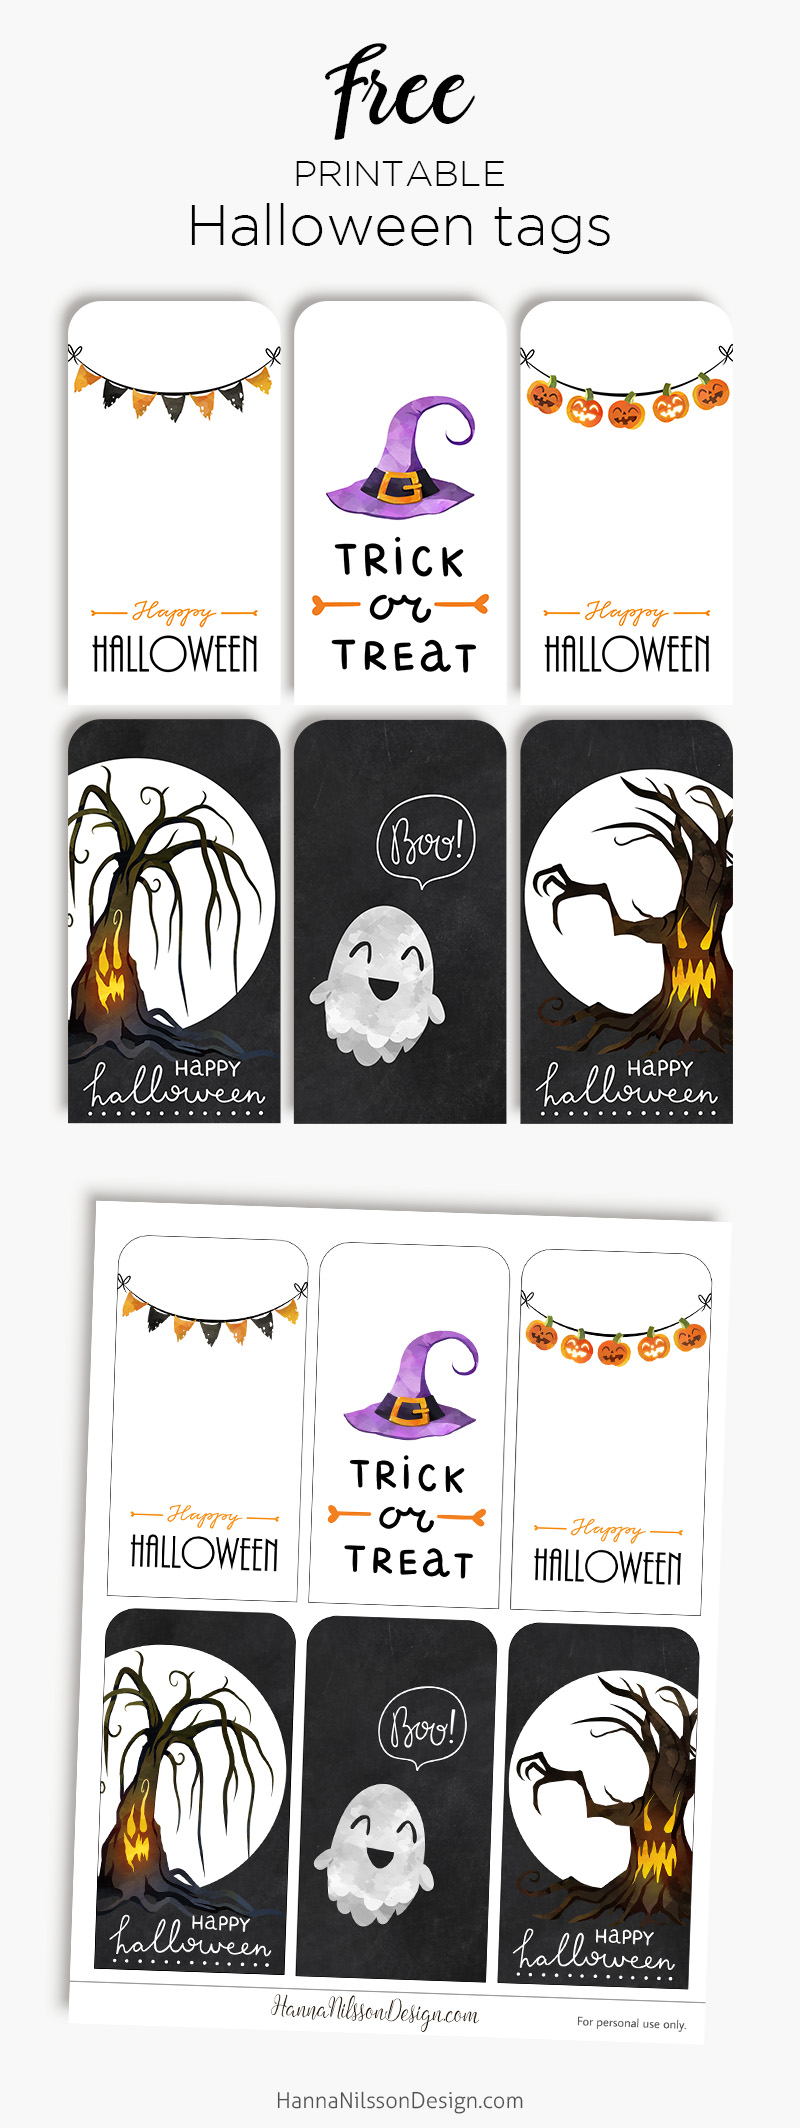 photograph regarding Cute Gift Tags Printable named Delighted Halloween tags Totally free printable creepy adorable